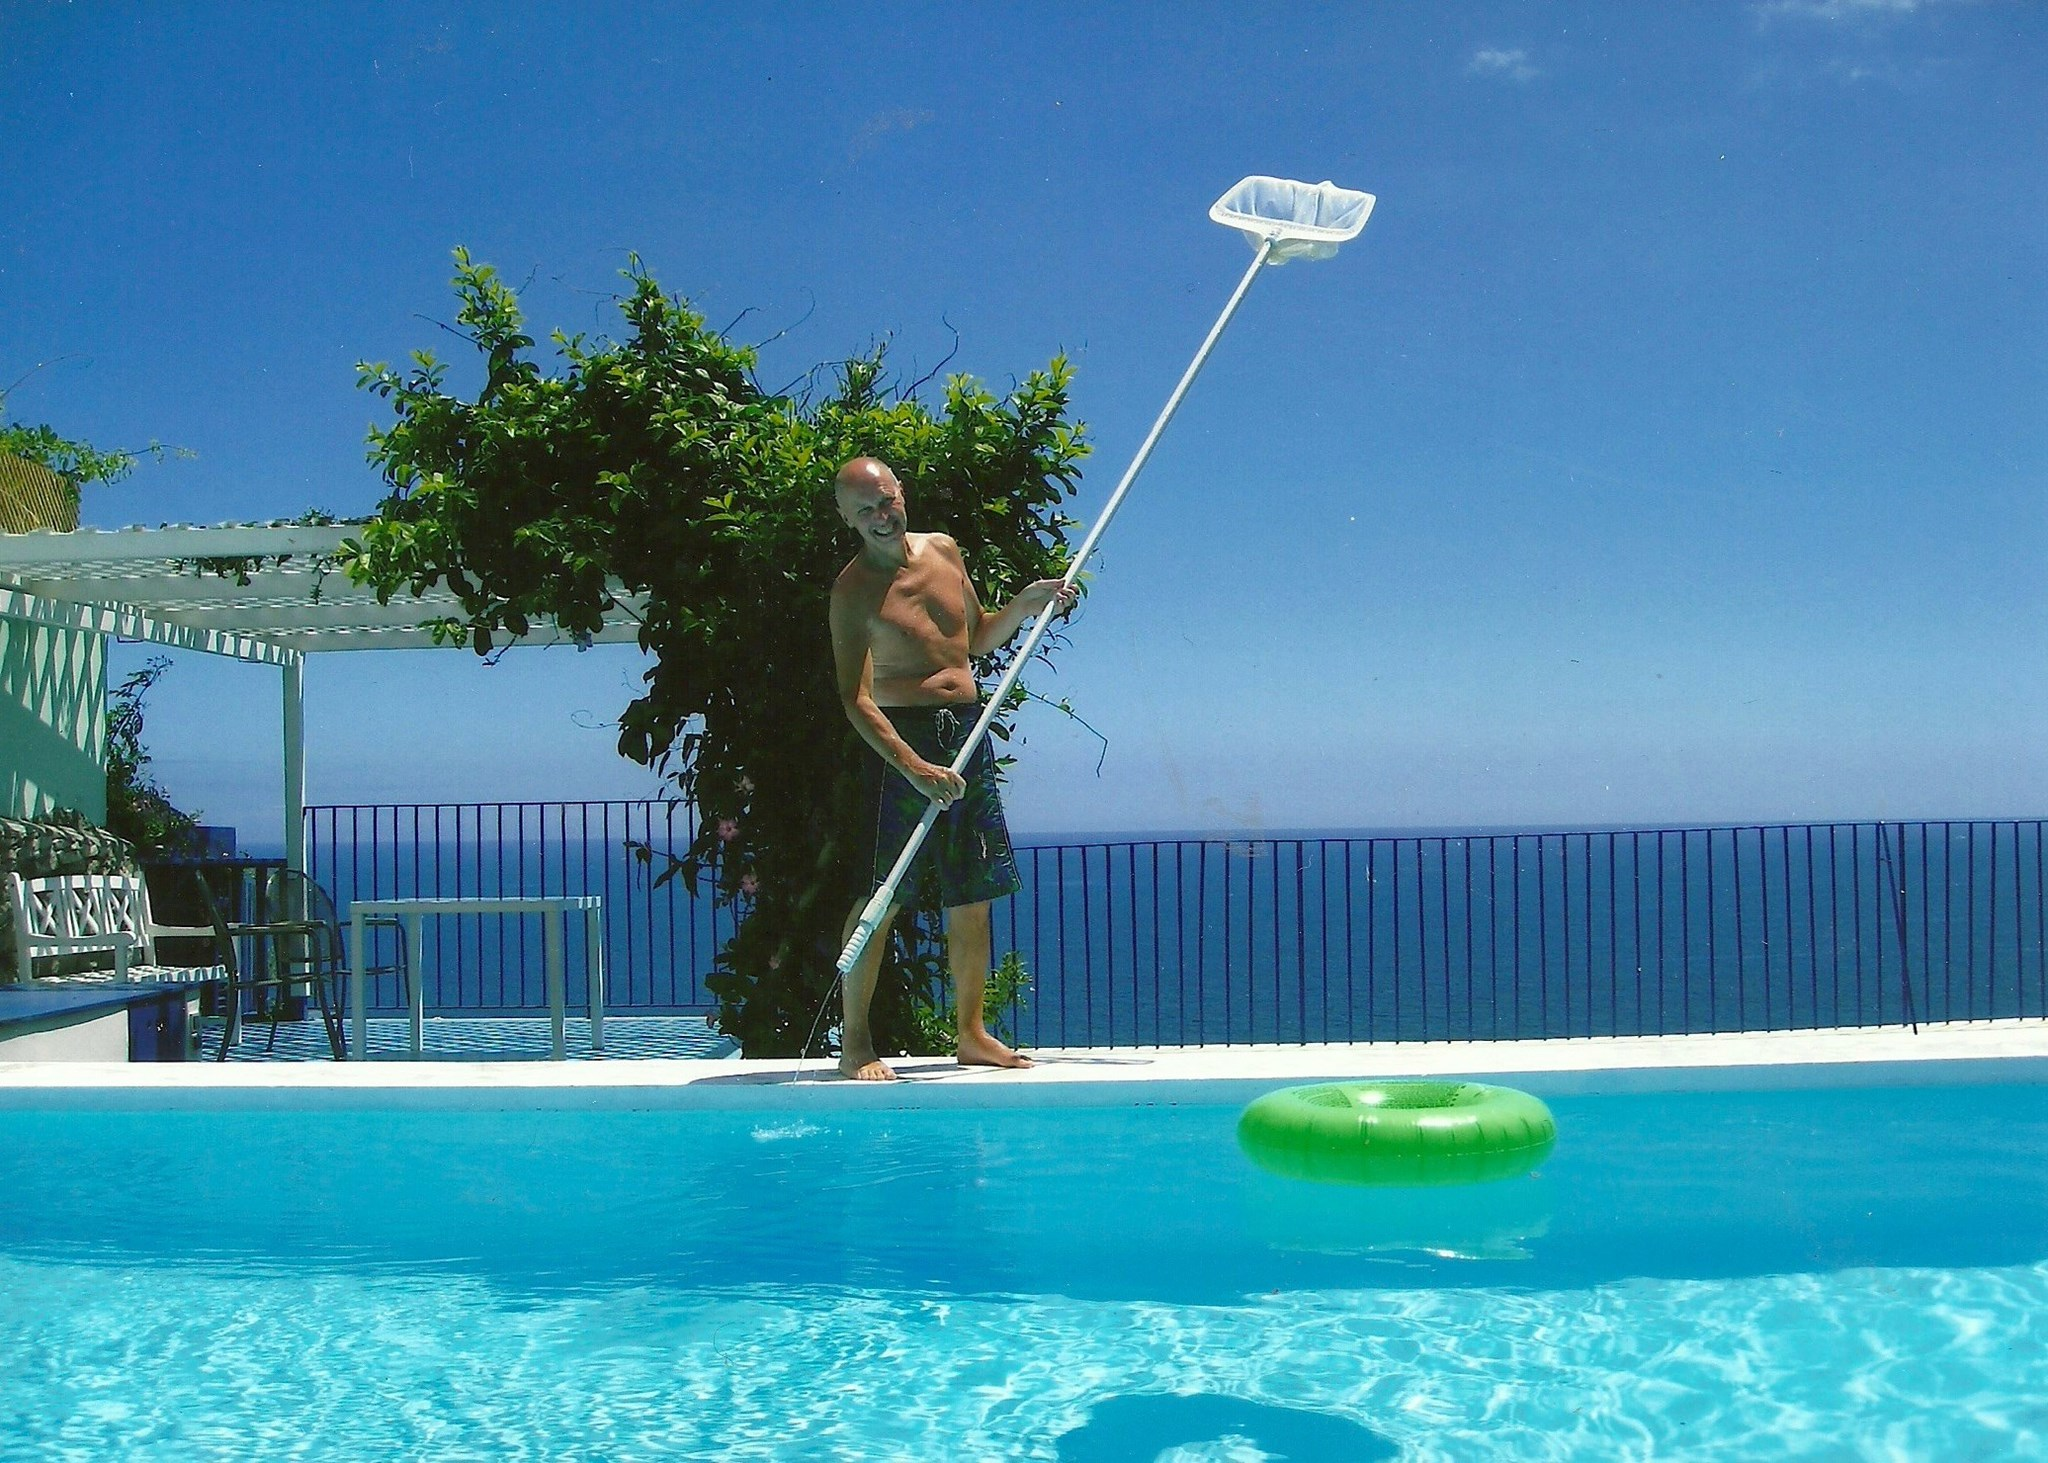 Pool Boy, Funchal, Madeira